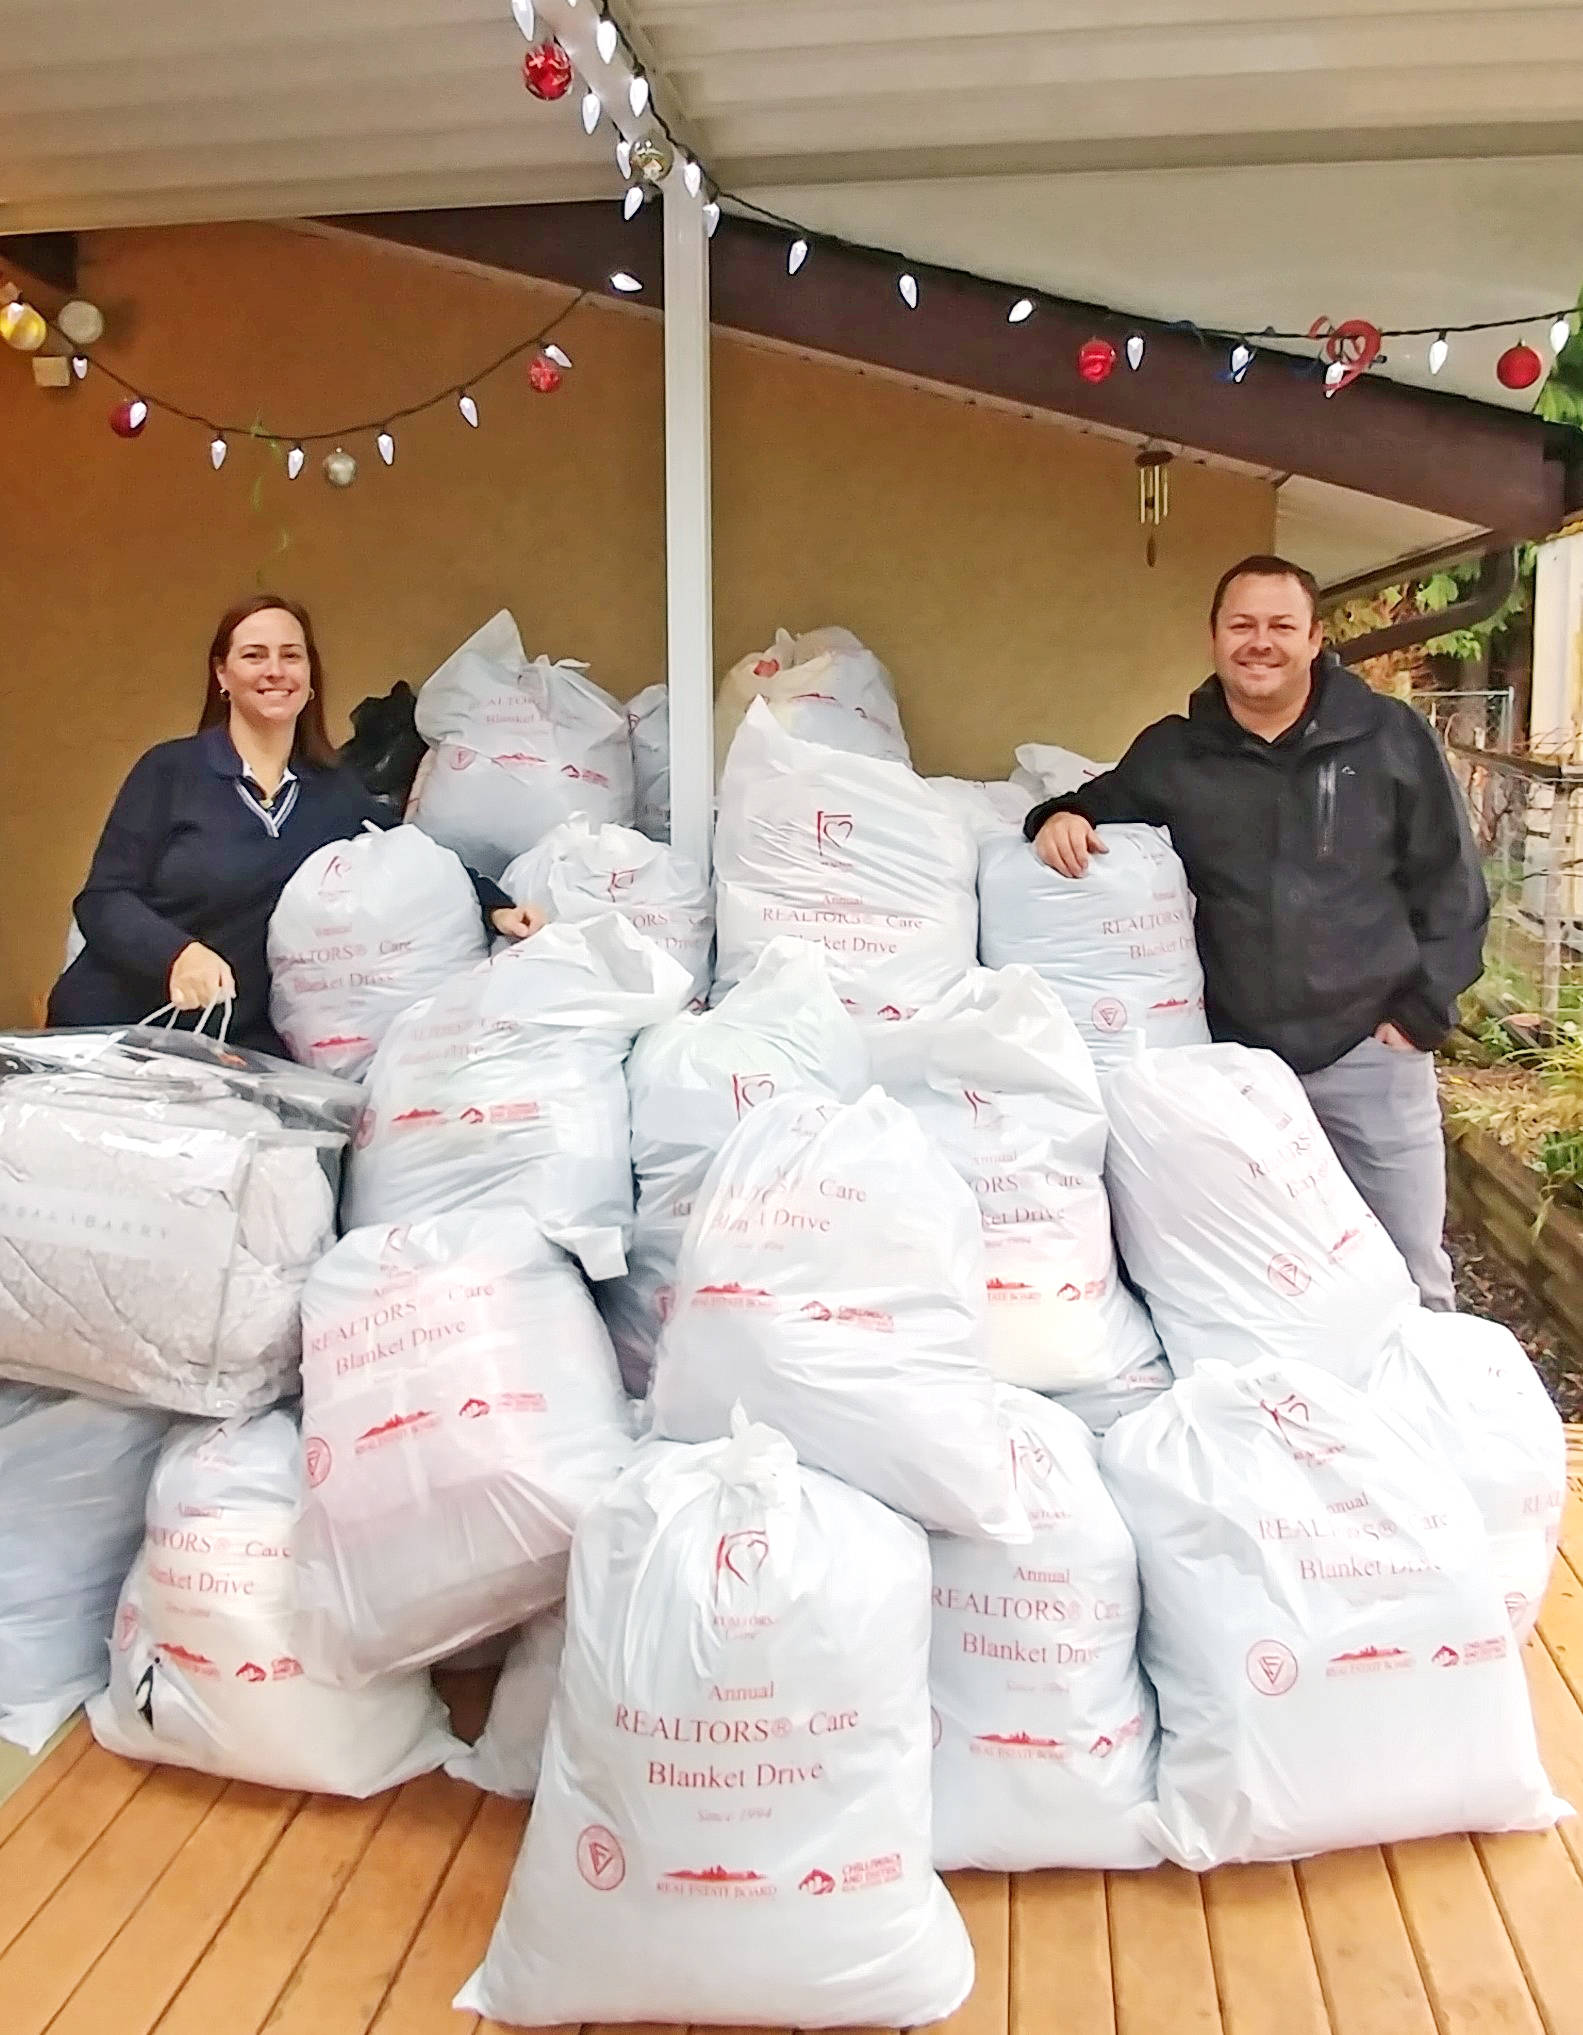 Blanket drive volunteers Cyndi Polovina and Tom Osterberg show off the large amount of donations received this year. Submitted photo